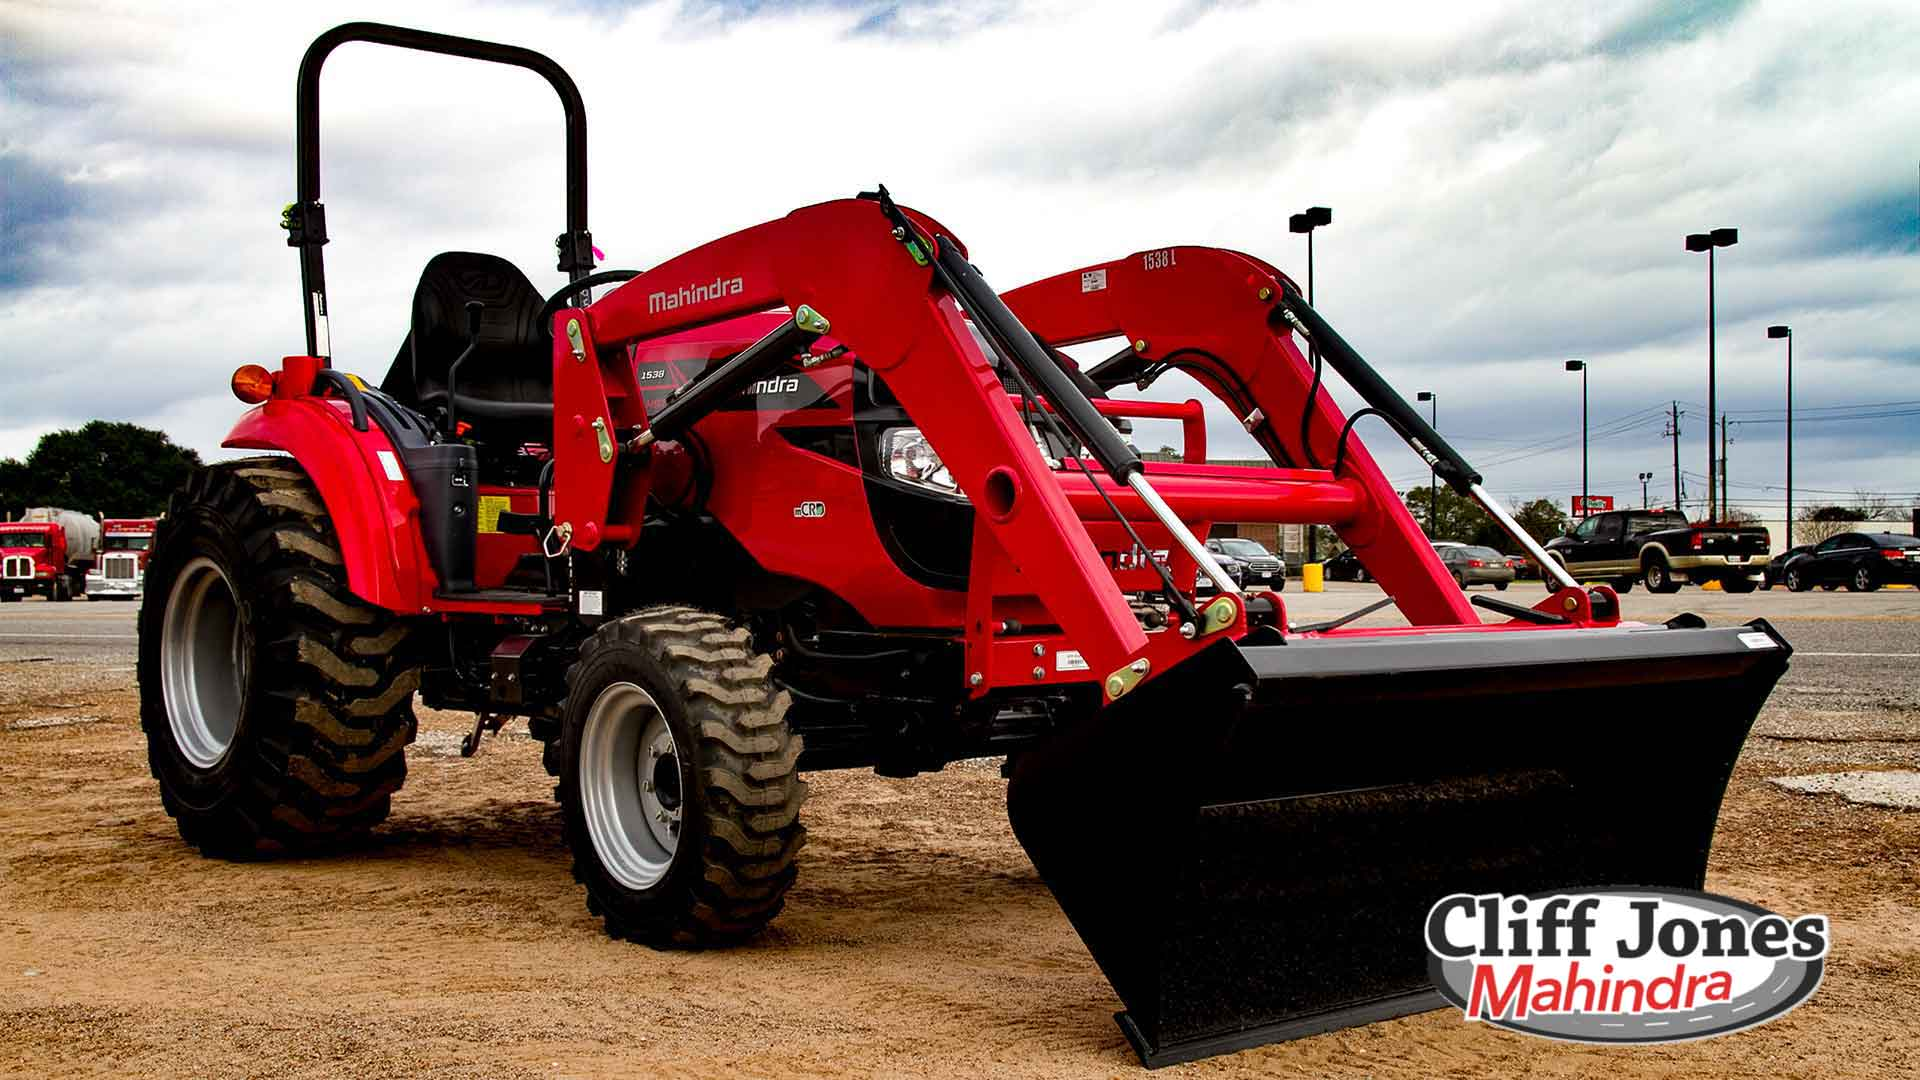 Cliff Jones Tractor In Sealy, Texas | Why The Mahindra 1538